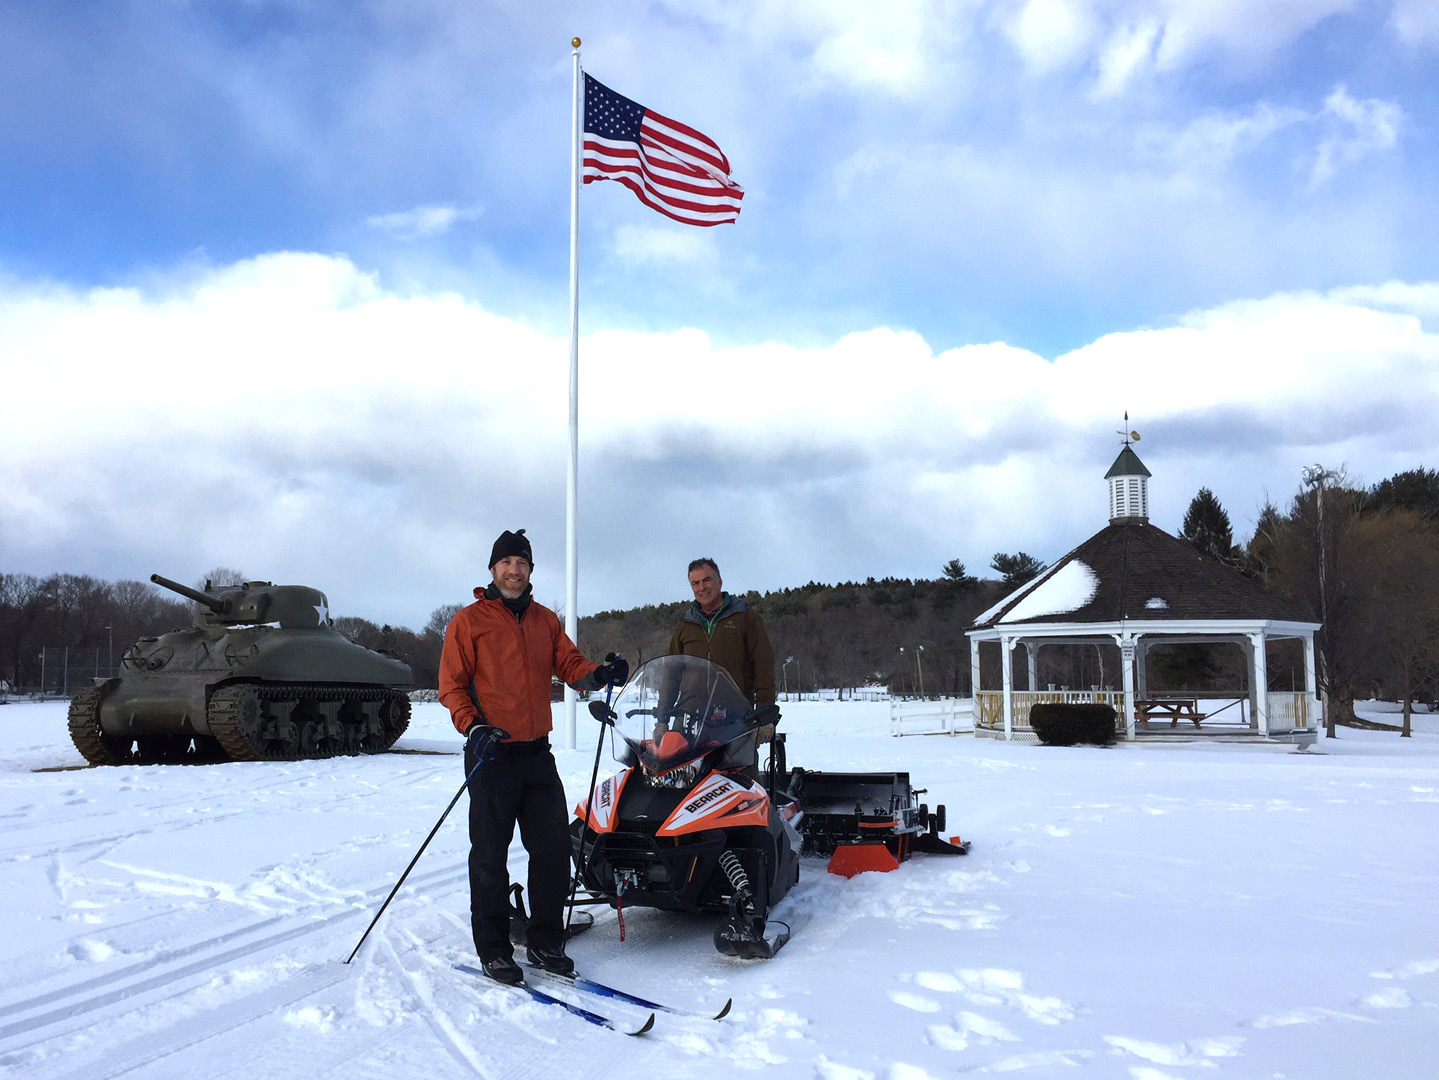 Greg Horner and Tom Catalano grooming at Patton Park